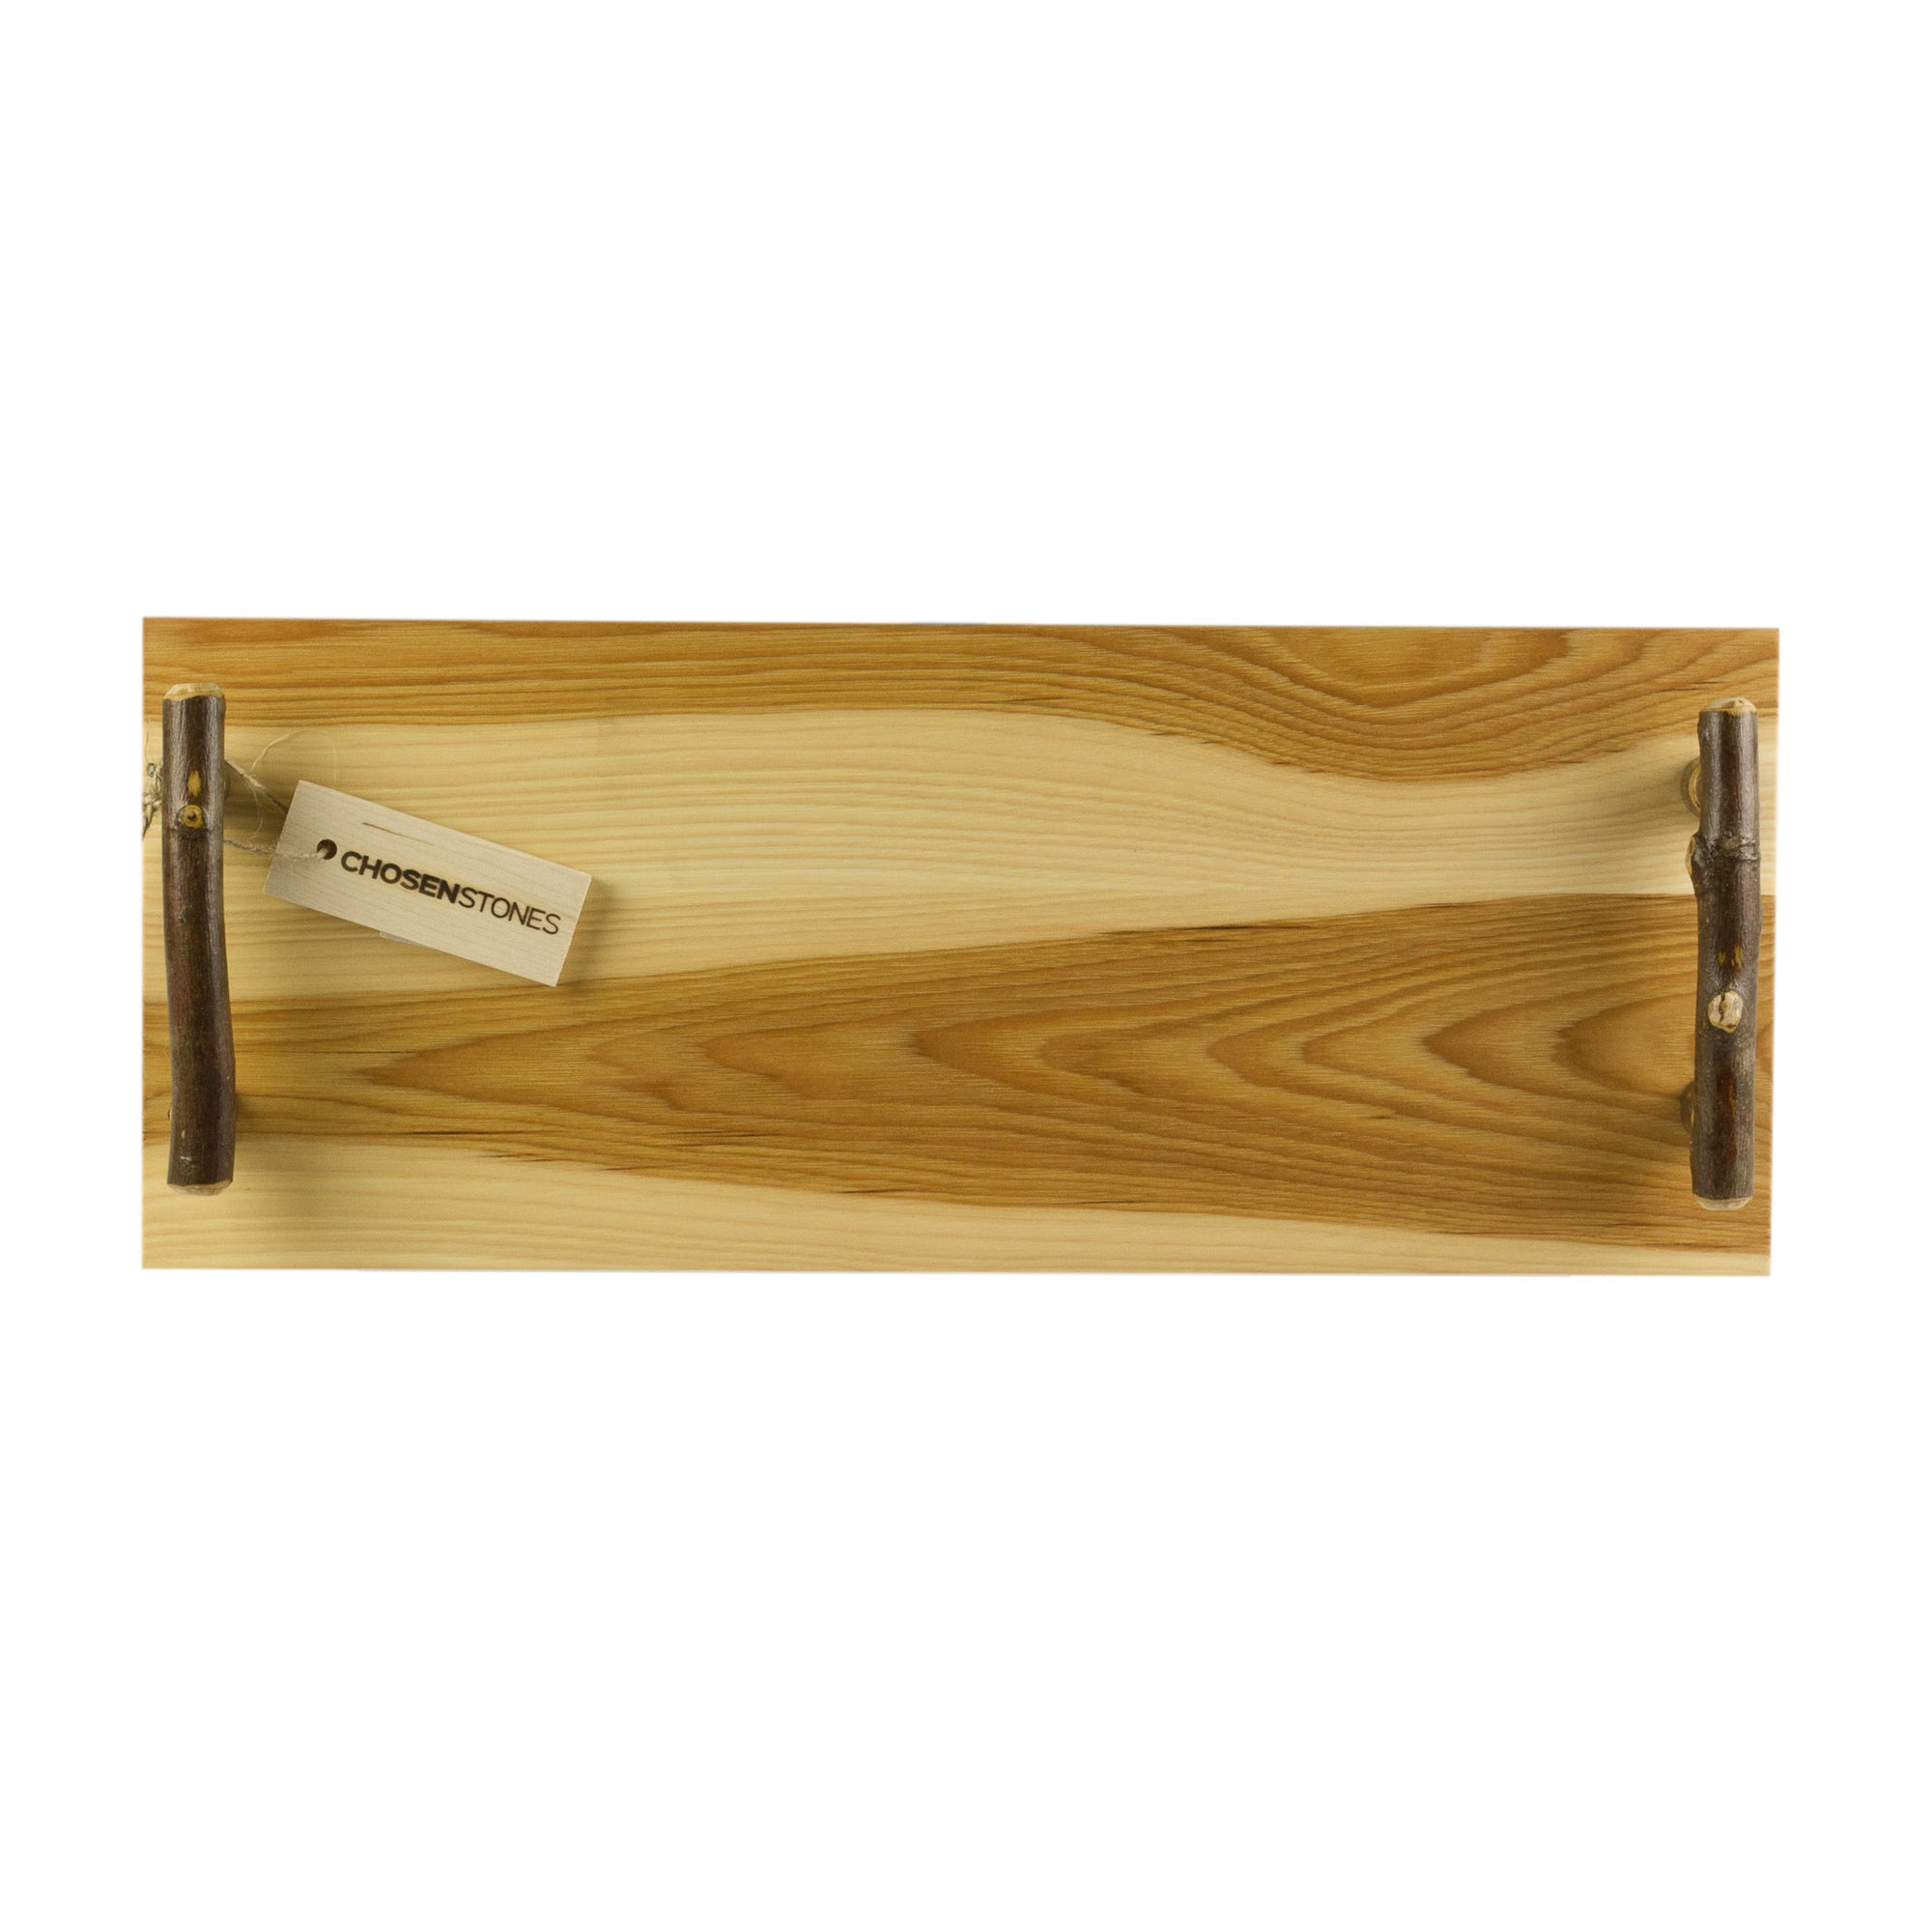 Rustic Hickory Serving Long Board - Serving and Cutting Boards - 20